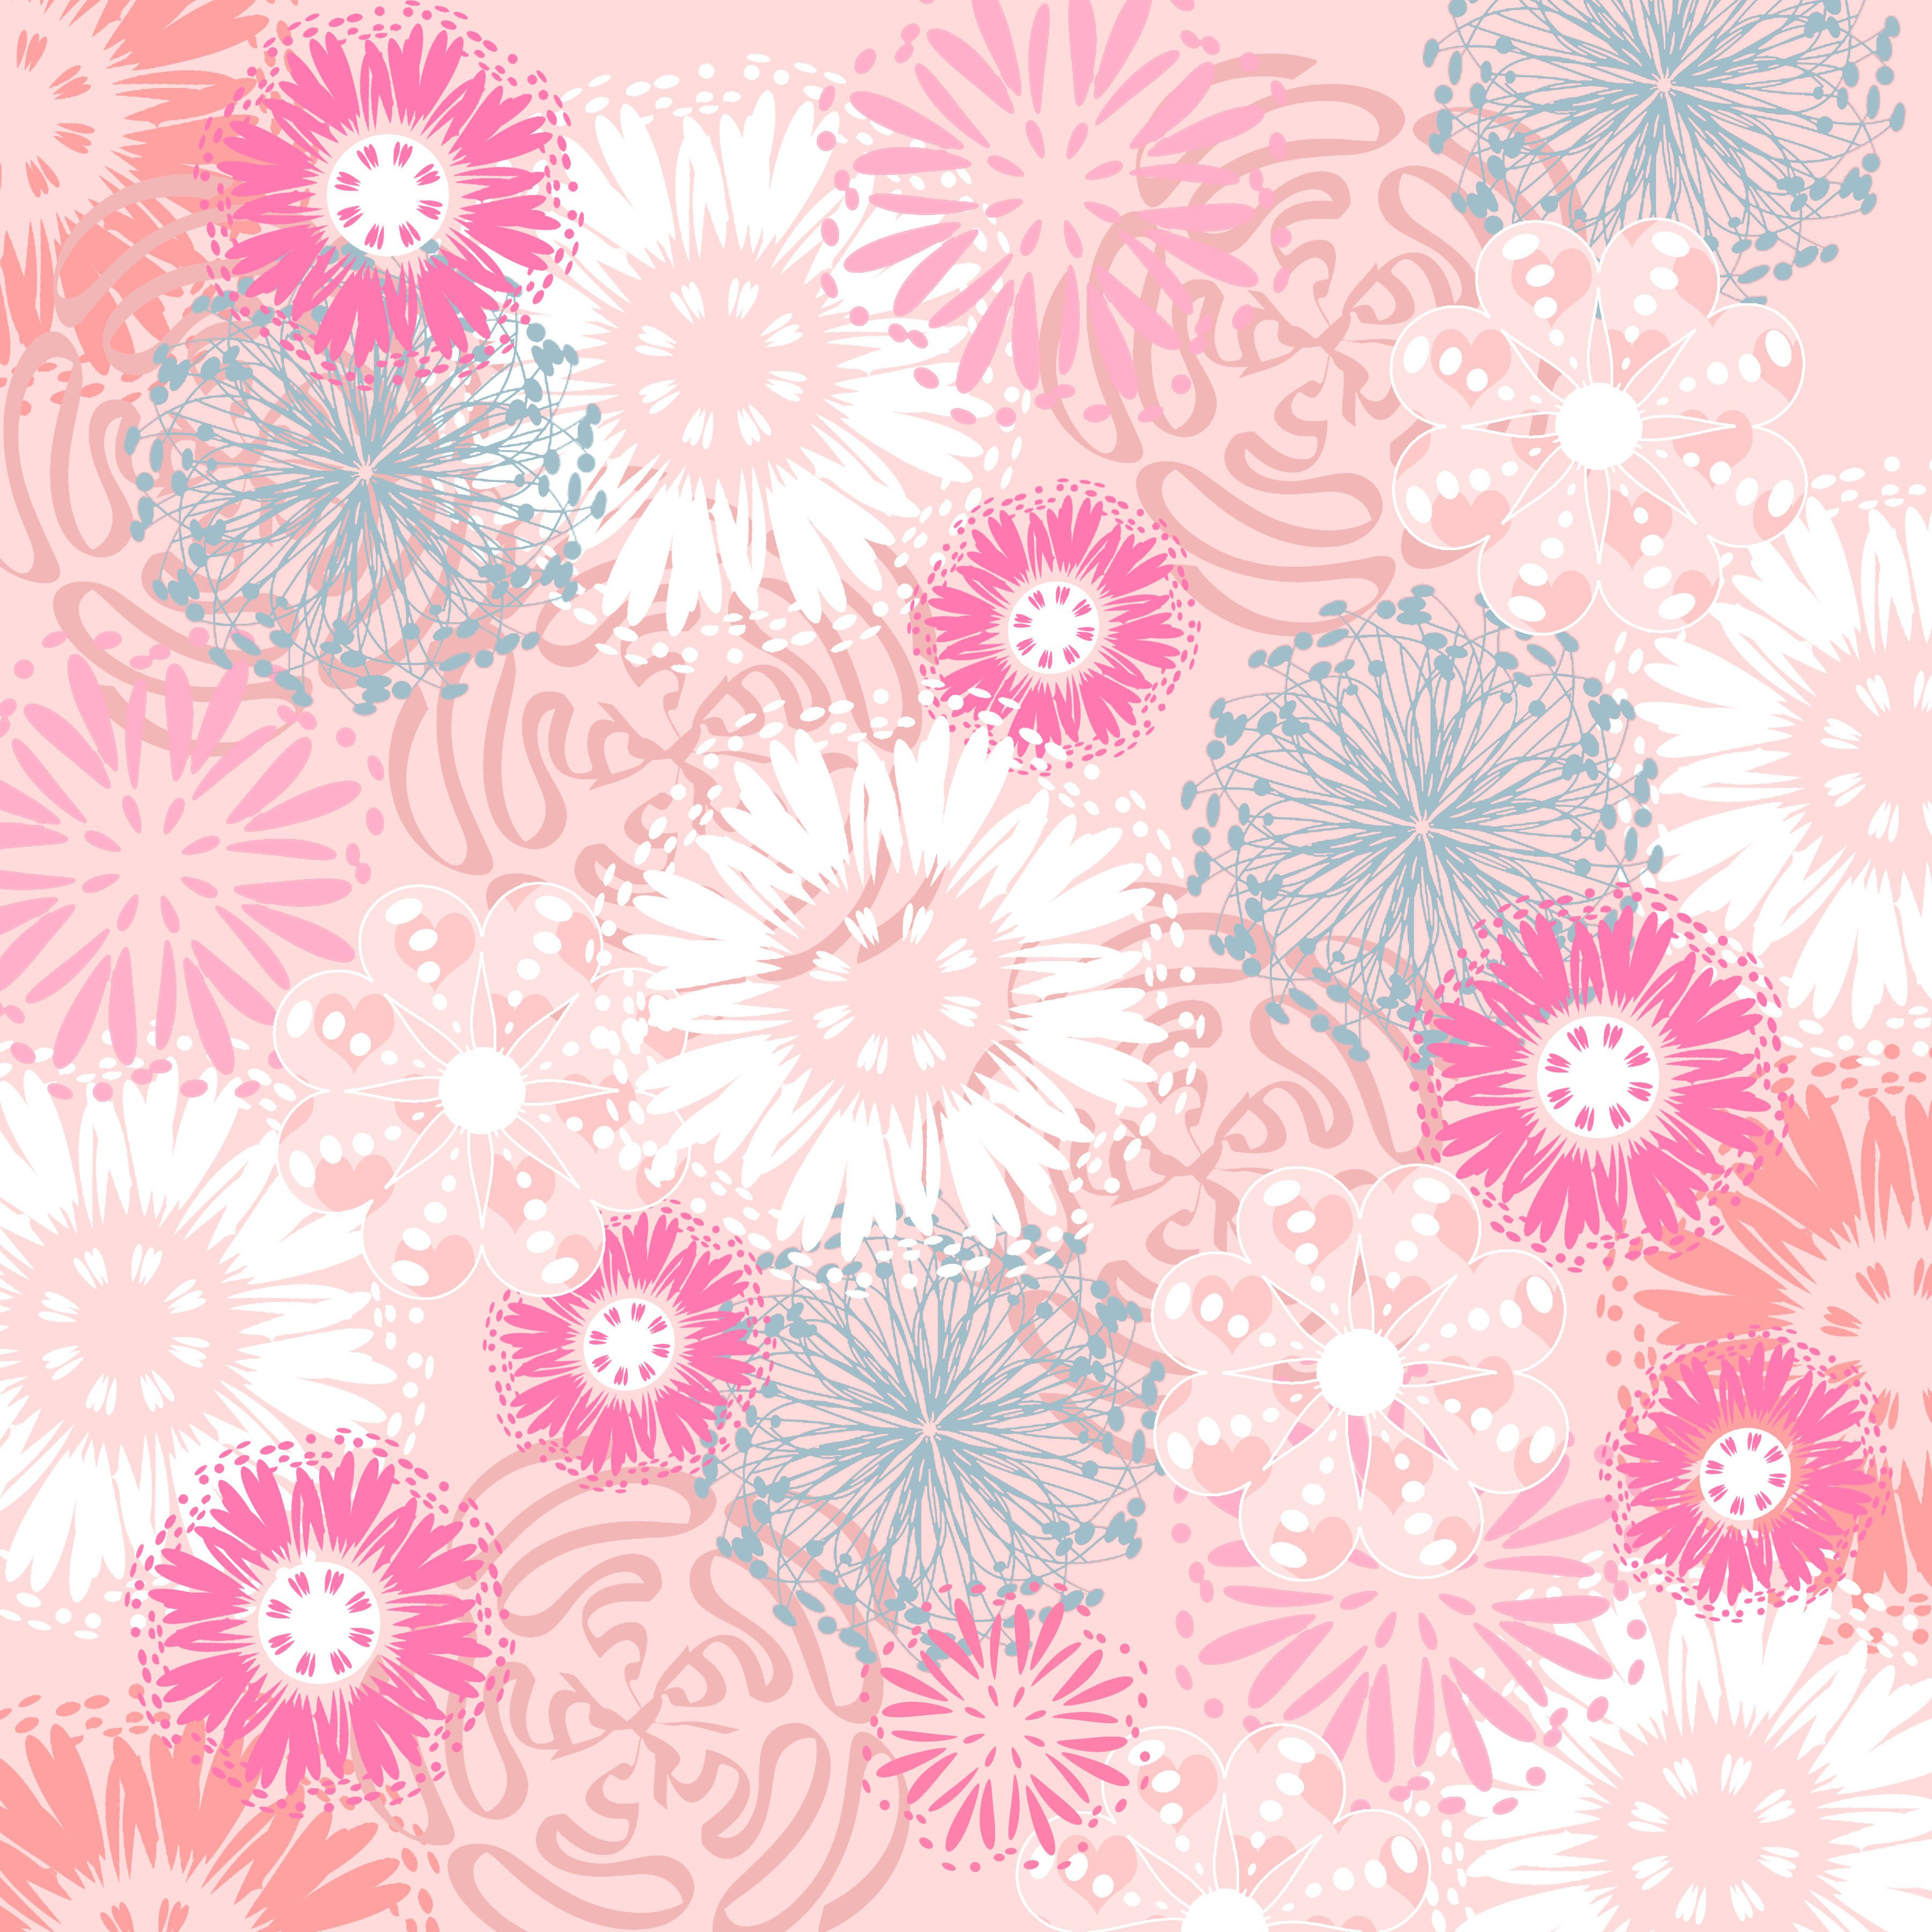 Free+Printable+Scrapbook+Paper | Scrapbook Paper | Pinterest - Free Printable Backgrounds